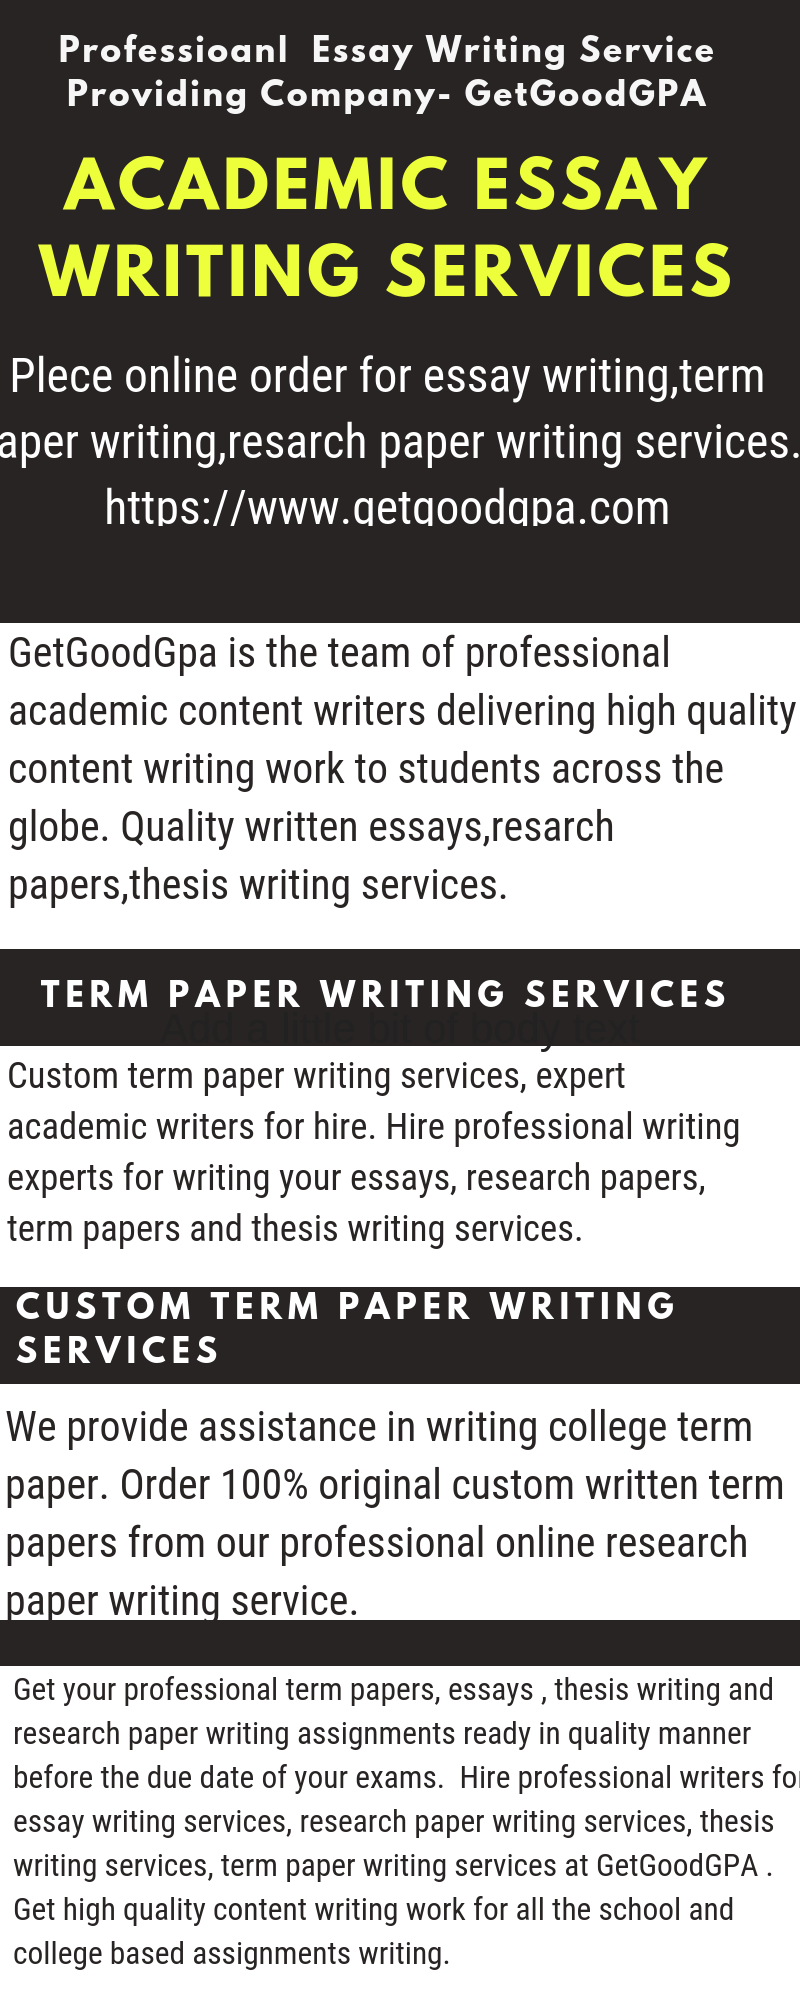 021 Research Paper Custom Writing Frightening Services Term Service Full